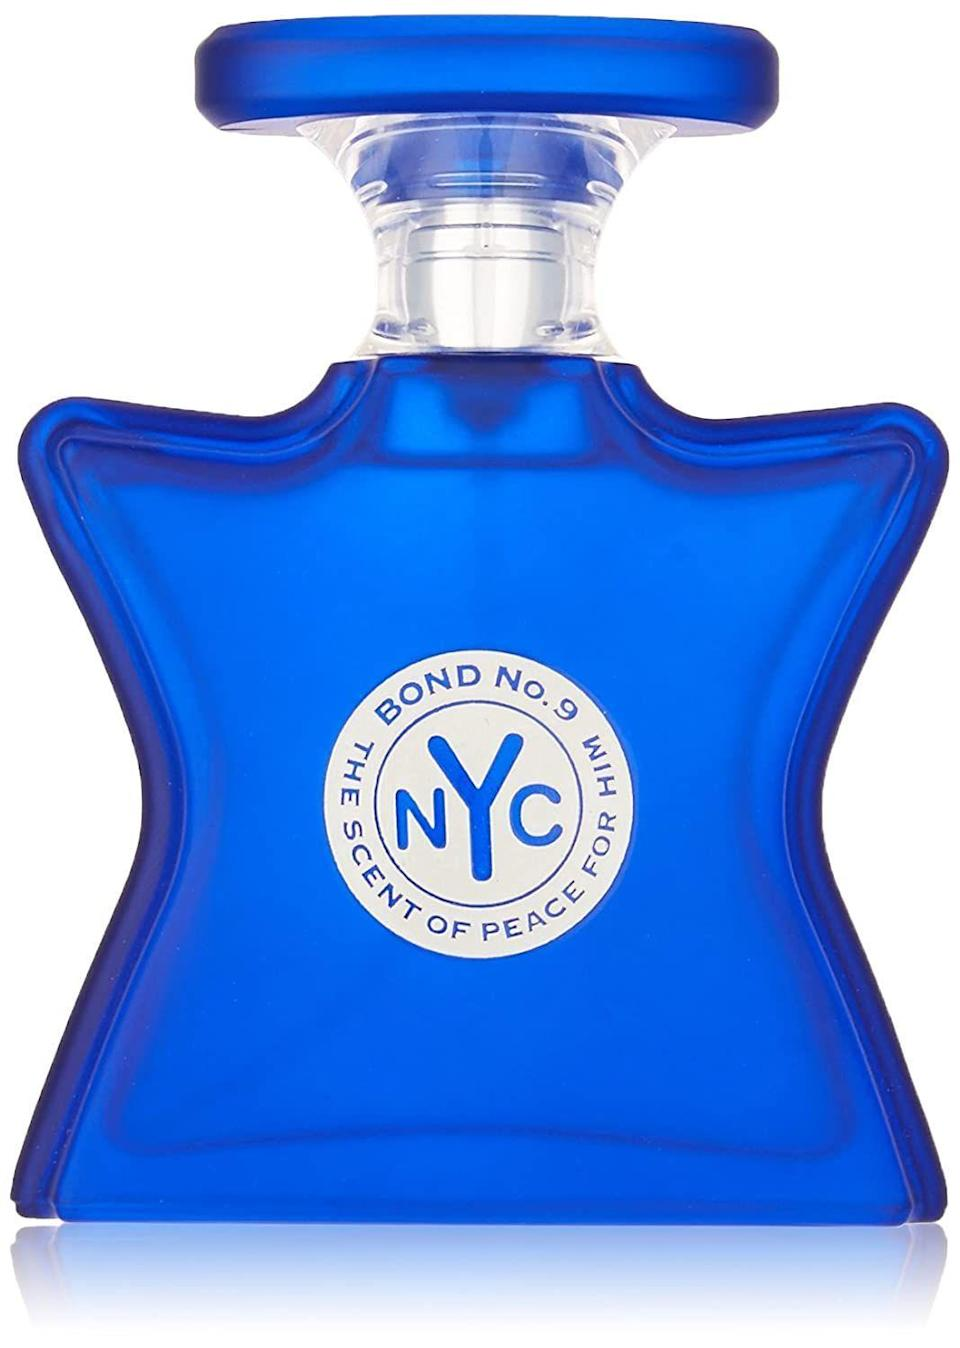 """<p><strong>Bond No. 9</strong></p><p>amazon.com</p><p><strong>$191.37</strong></p><p><a href=""""https://www.amazon.com/dp/B00KAII37O?tag=syn-yahoo-20&ascsubtag=%5Bartid%7C10054.g.34385982%5Bsrc%7Cyahoo-us"""" rel=""""nofollow noopener"""" target=""""_blank"""" data-ylk=""""slk:Shop Now"""" class=""""link rapid-noclick-resp"""">Shop Now</a></p><p>Last but certainly not least, you've got to have the perfect fall scent. Bond No. 9 has reformulated their bestselling Scent of Peace perfume into a men's cologne, and the result — a cedarwood fragrance with notes of patchouli and juniper — is intoxicating.</p>"""